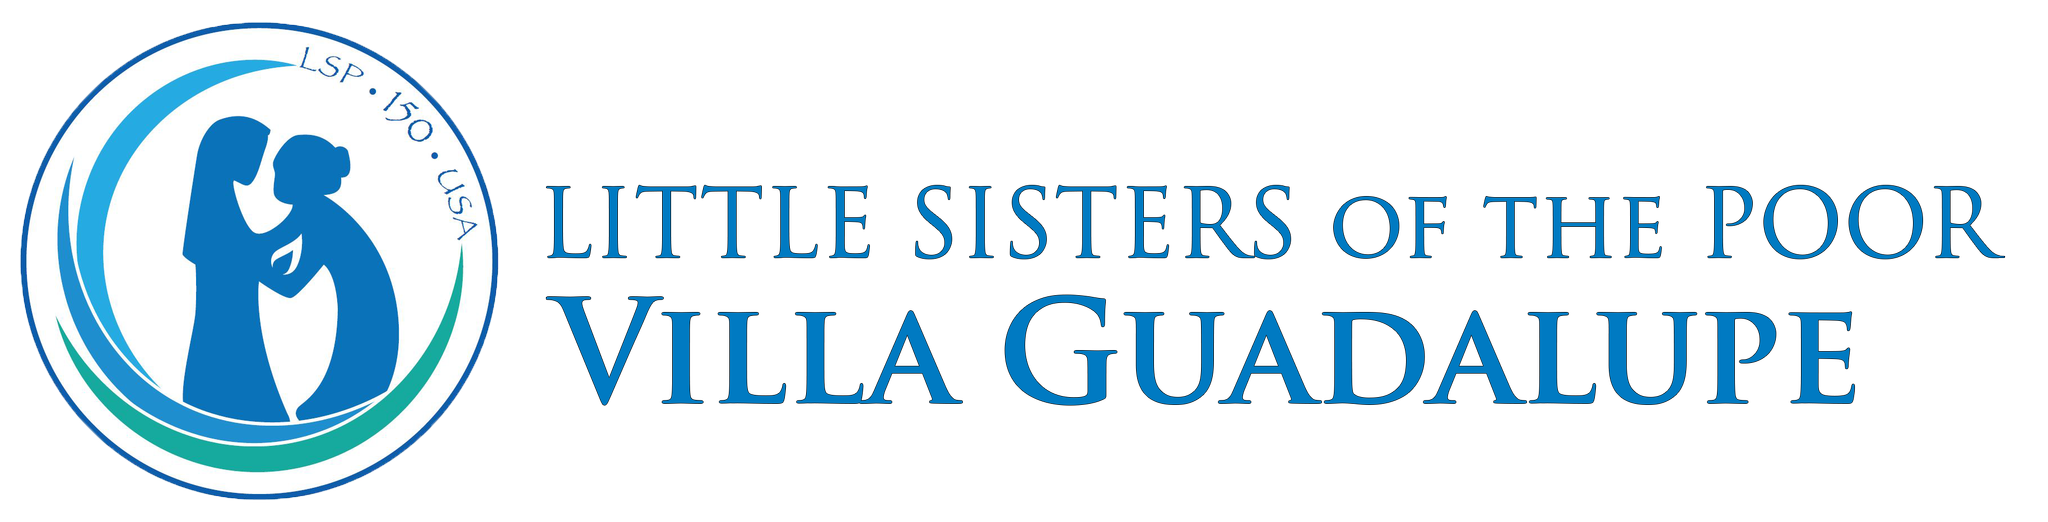 Little Sisters of the Poor Gallup